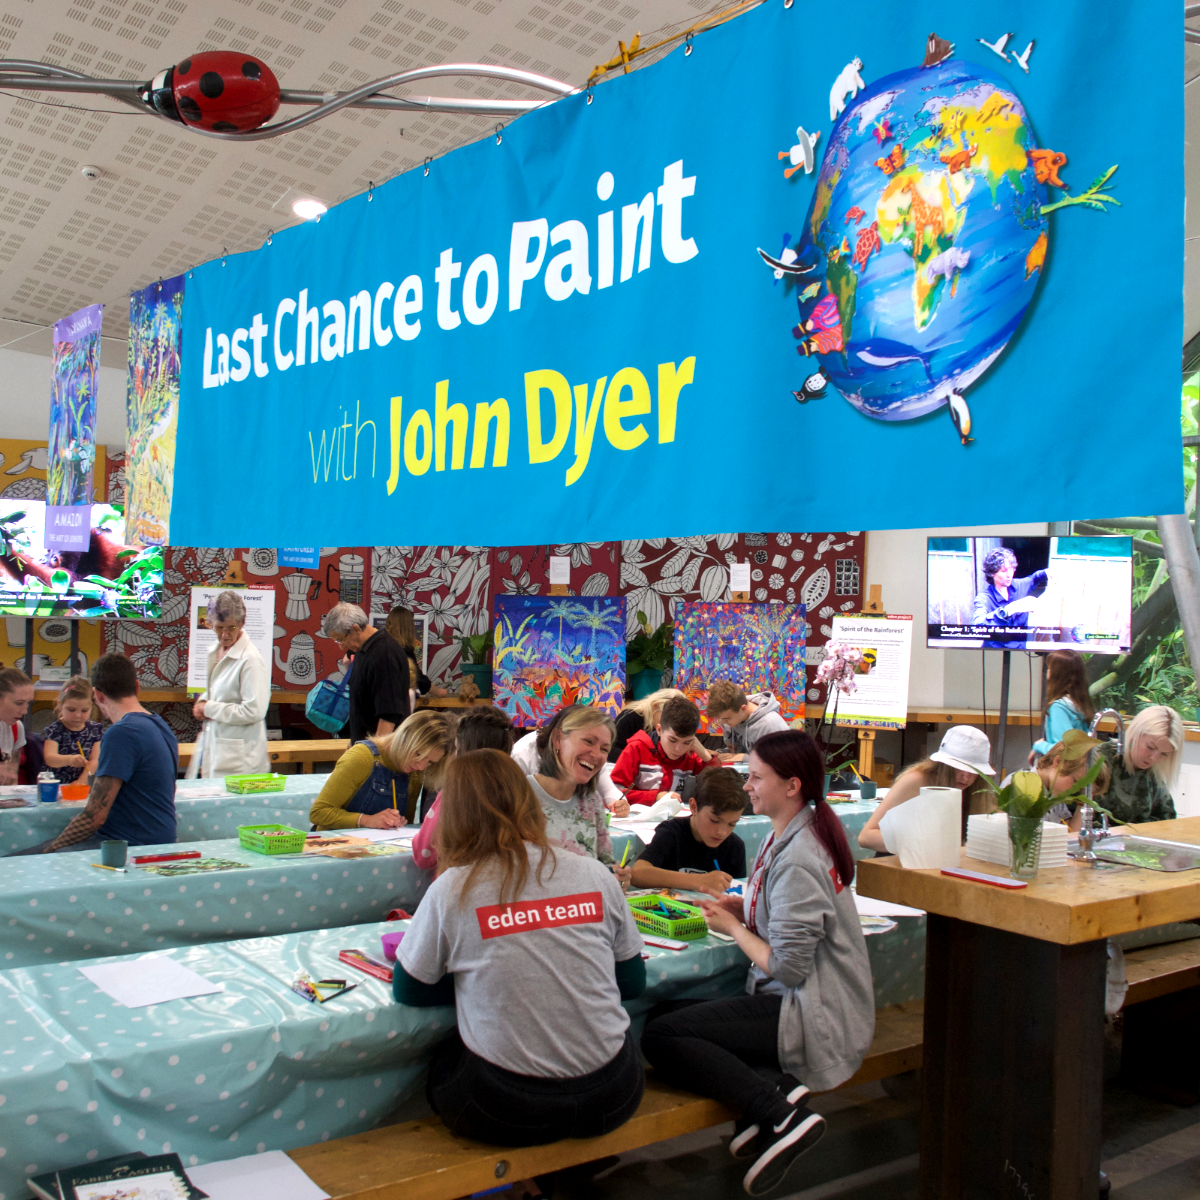 John Dyer Last Chance to Paint Exhibition at the Eden Project